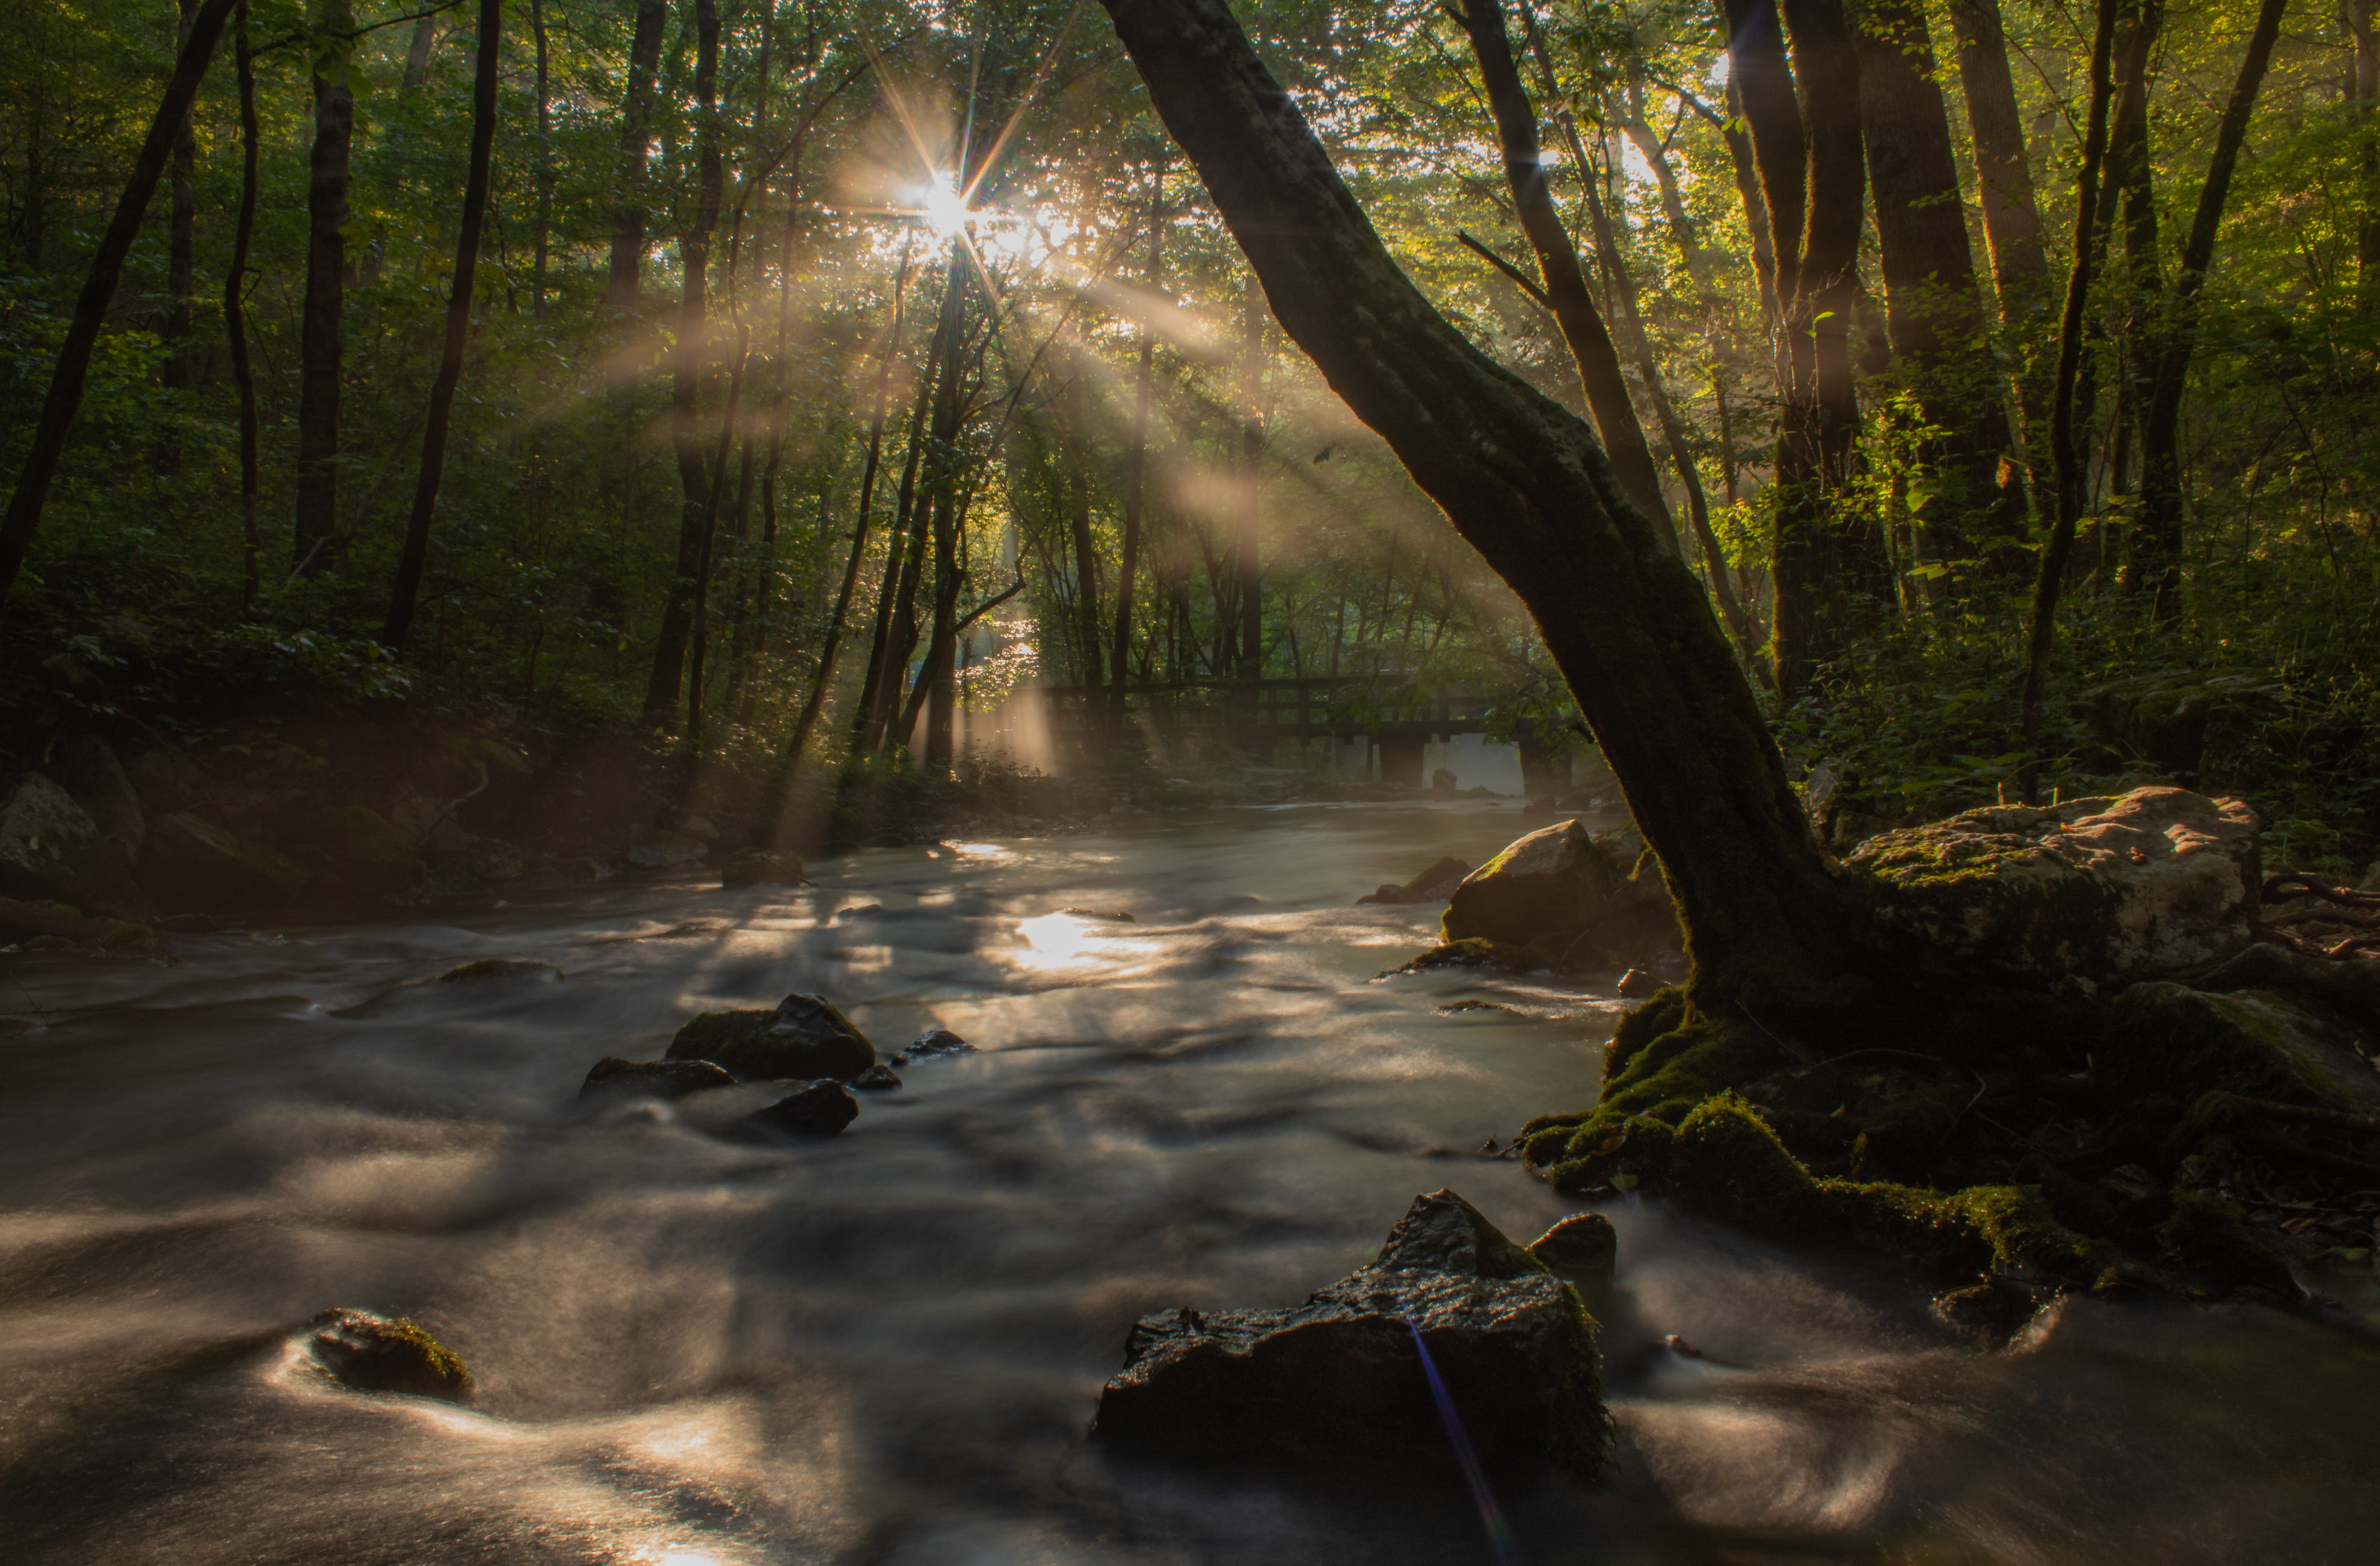 Golden sun rays pouring through a misty forest scene with a stream.